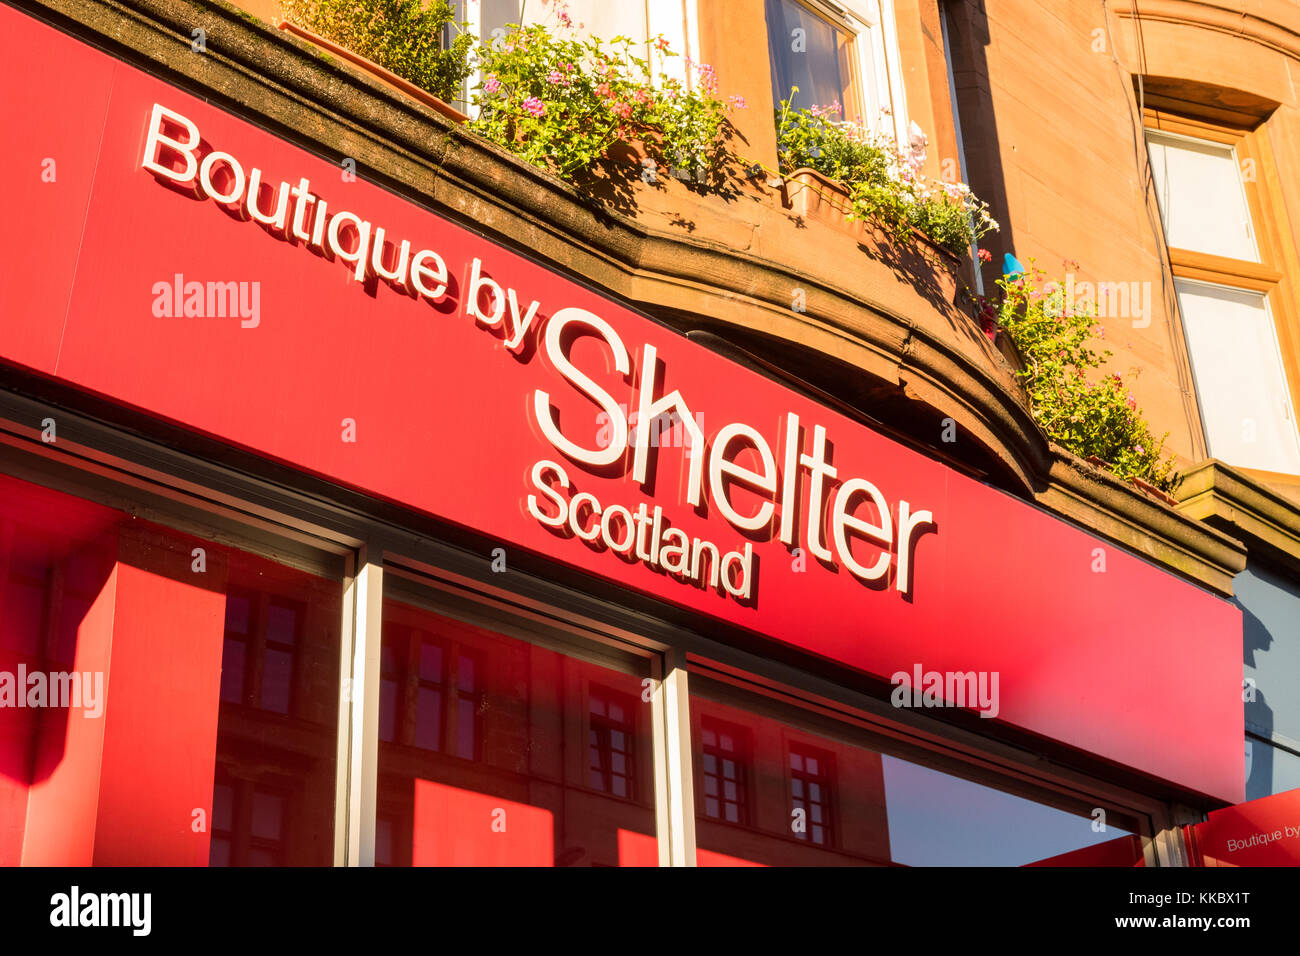 Boutique by Shelter Scotland shop on Byres Road, Glasgow, Scotland, UK - Stock Image